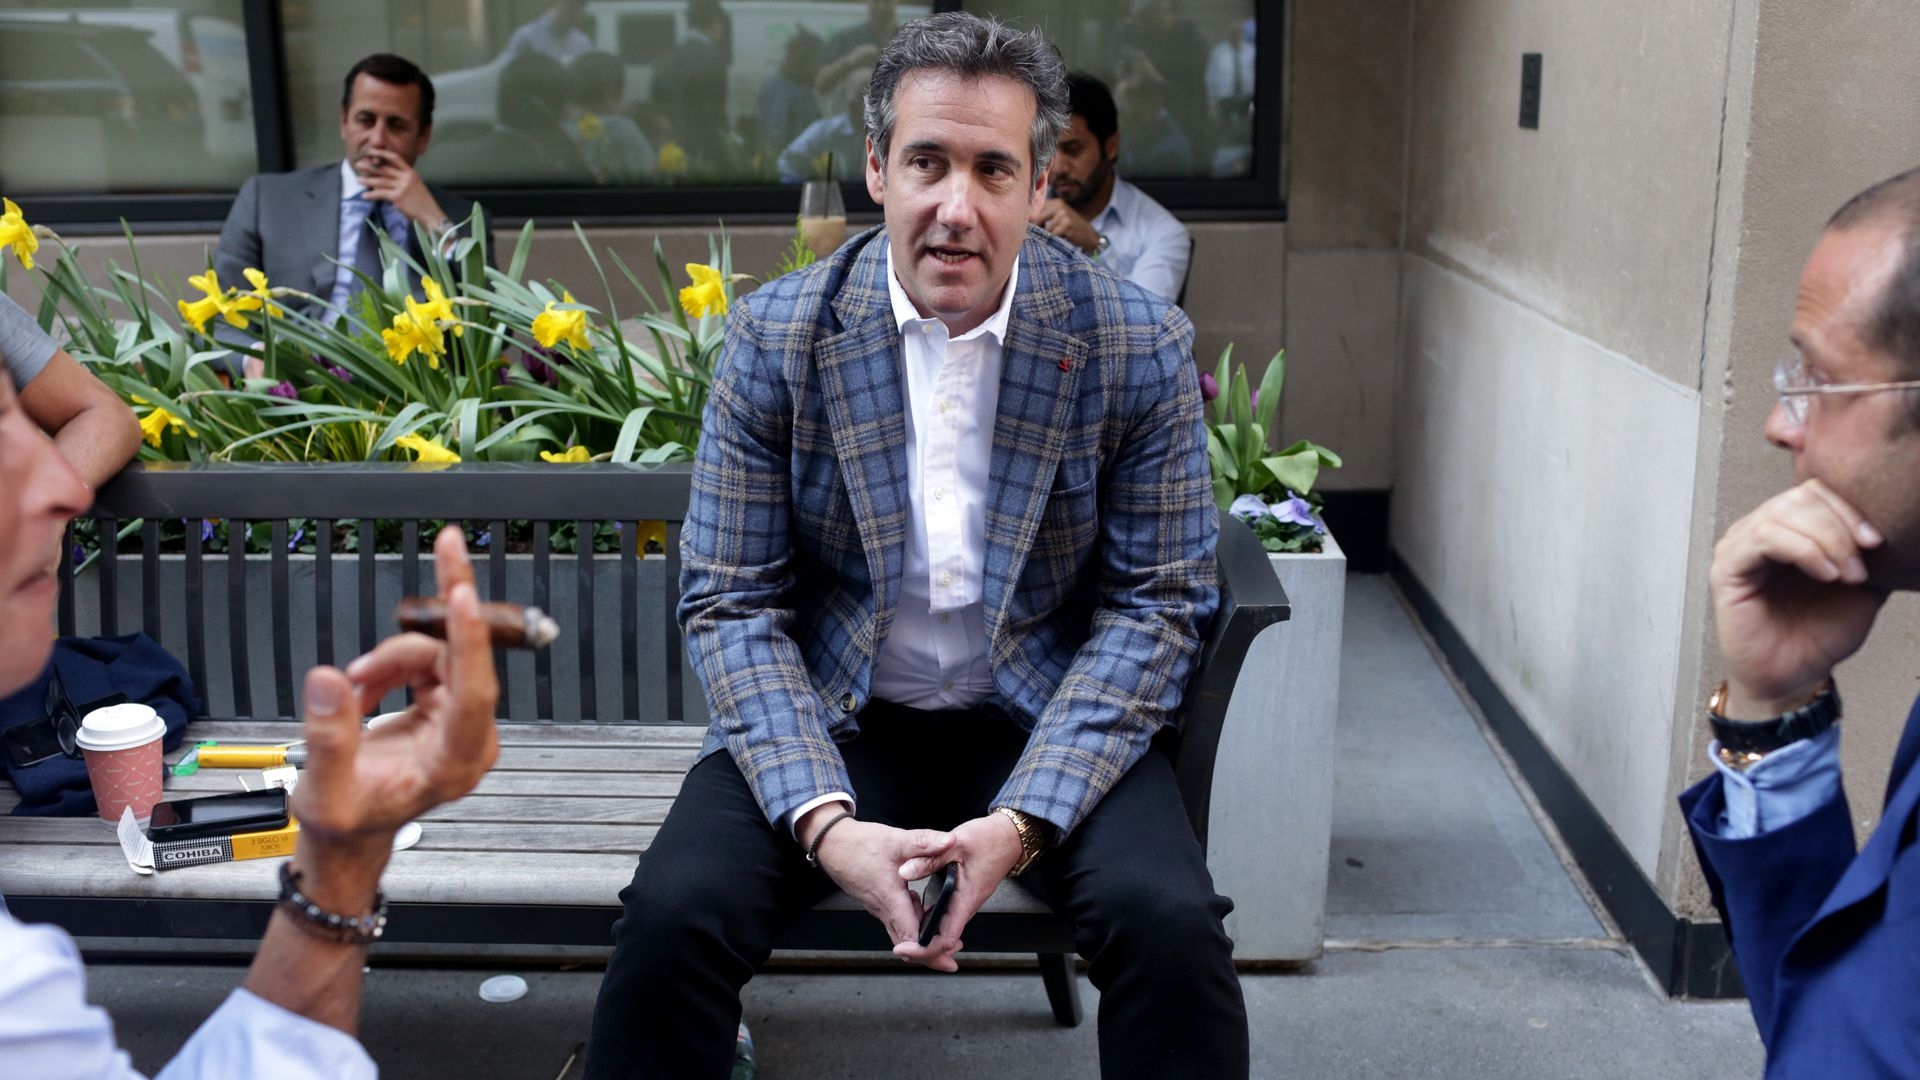 Michael Cohen sitting on a bench, talking